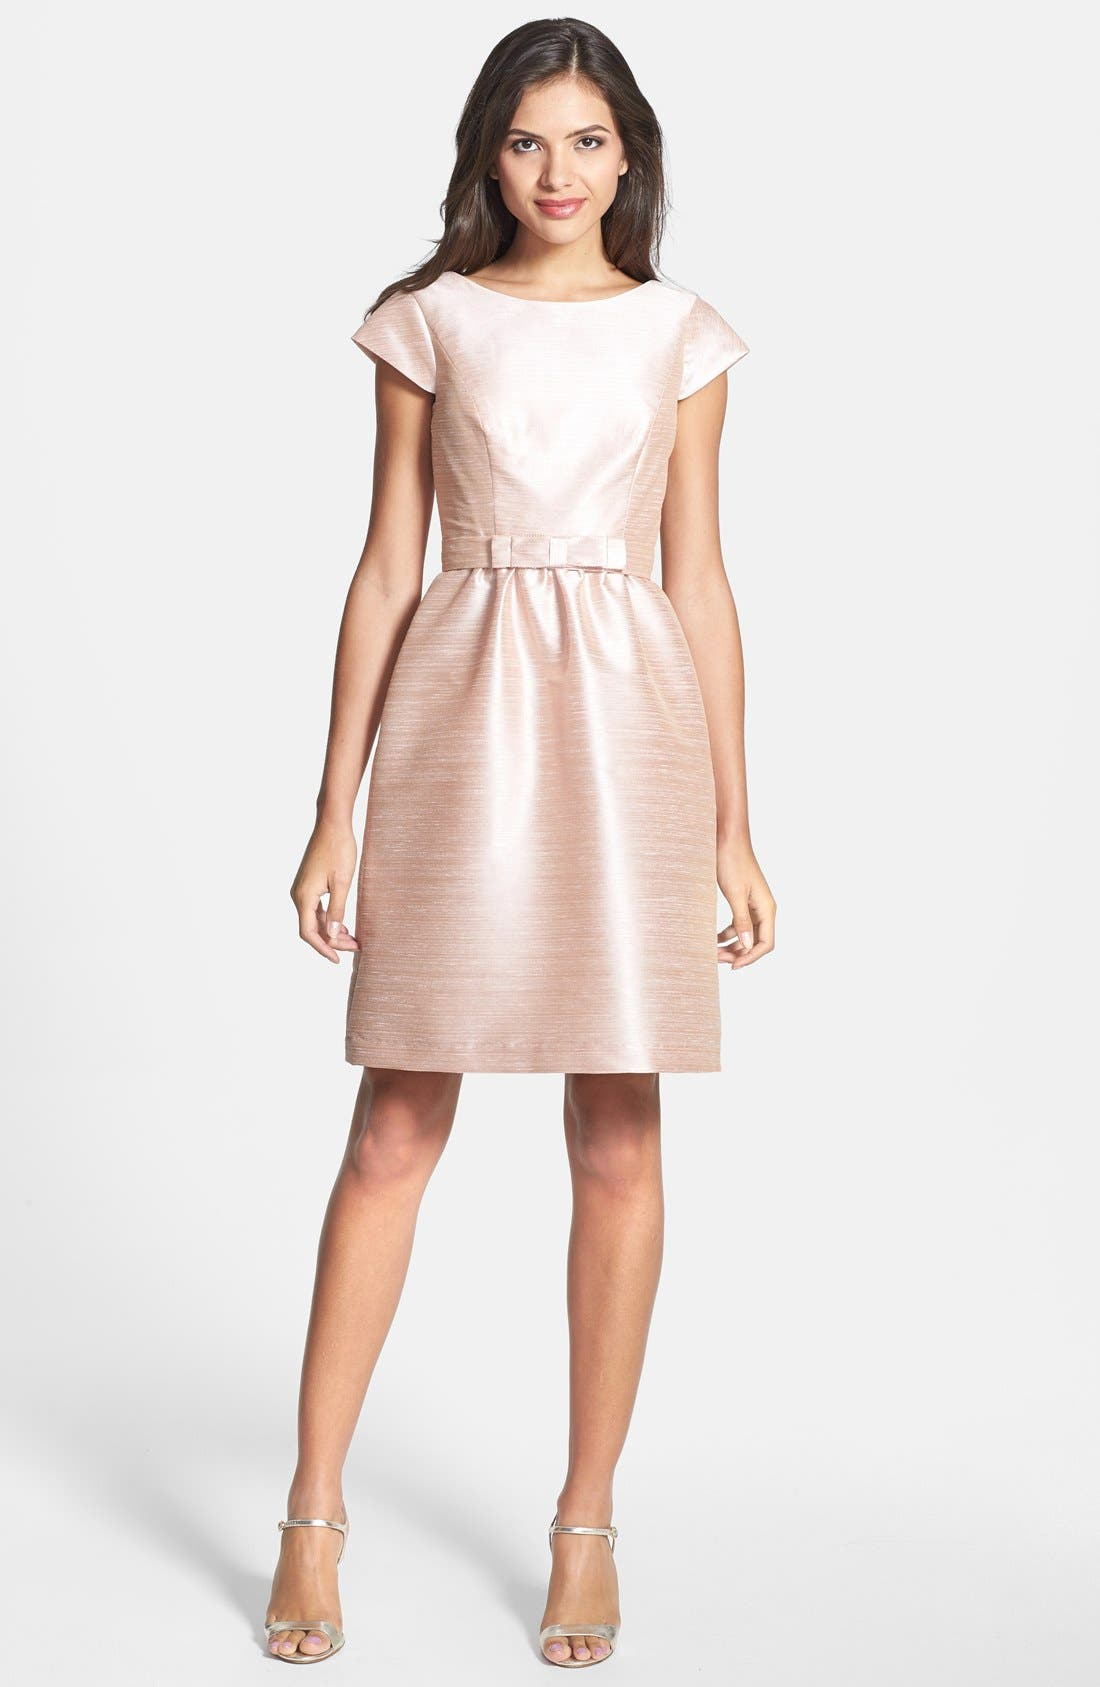 Alternate Image 1 Selected - Alfred Sung Woven Fit & Flare Dress